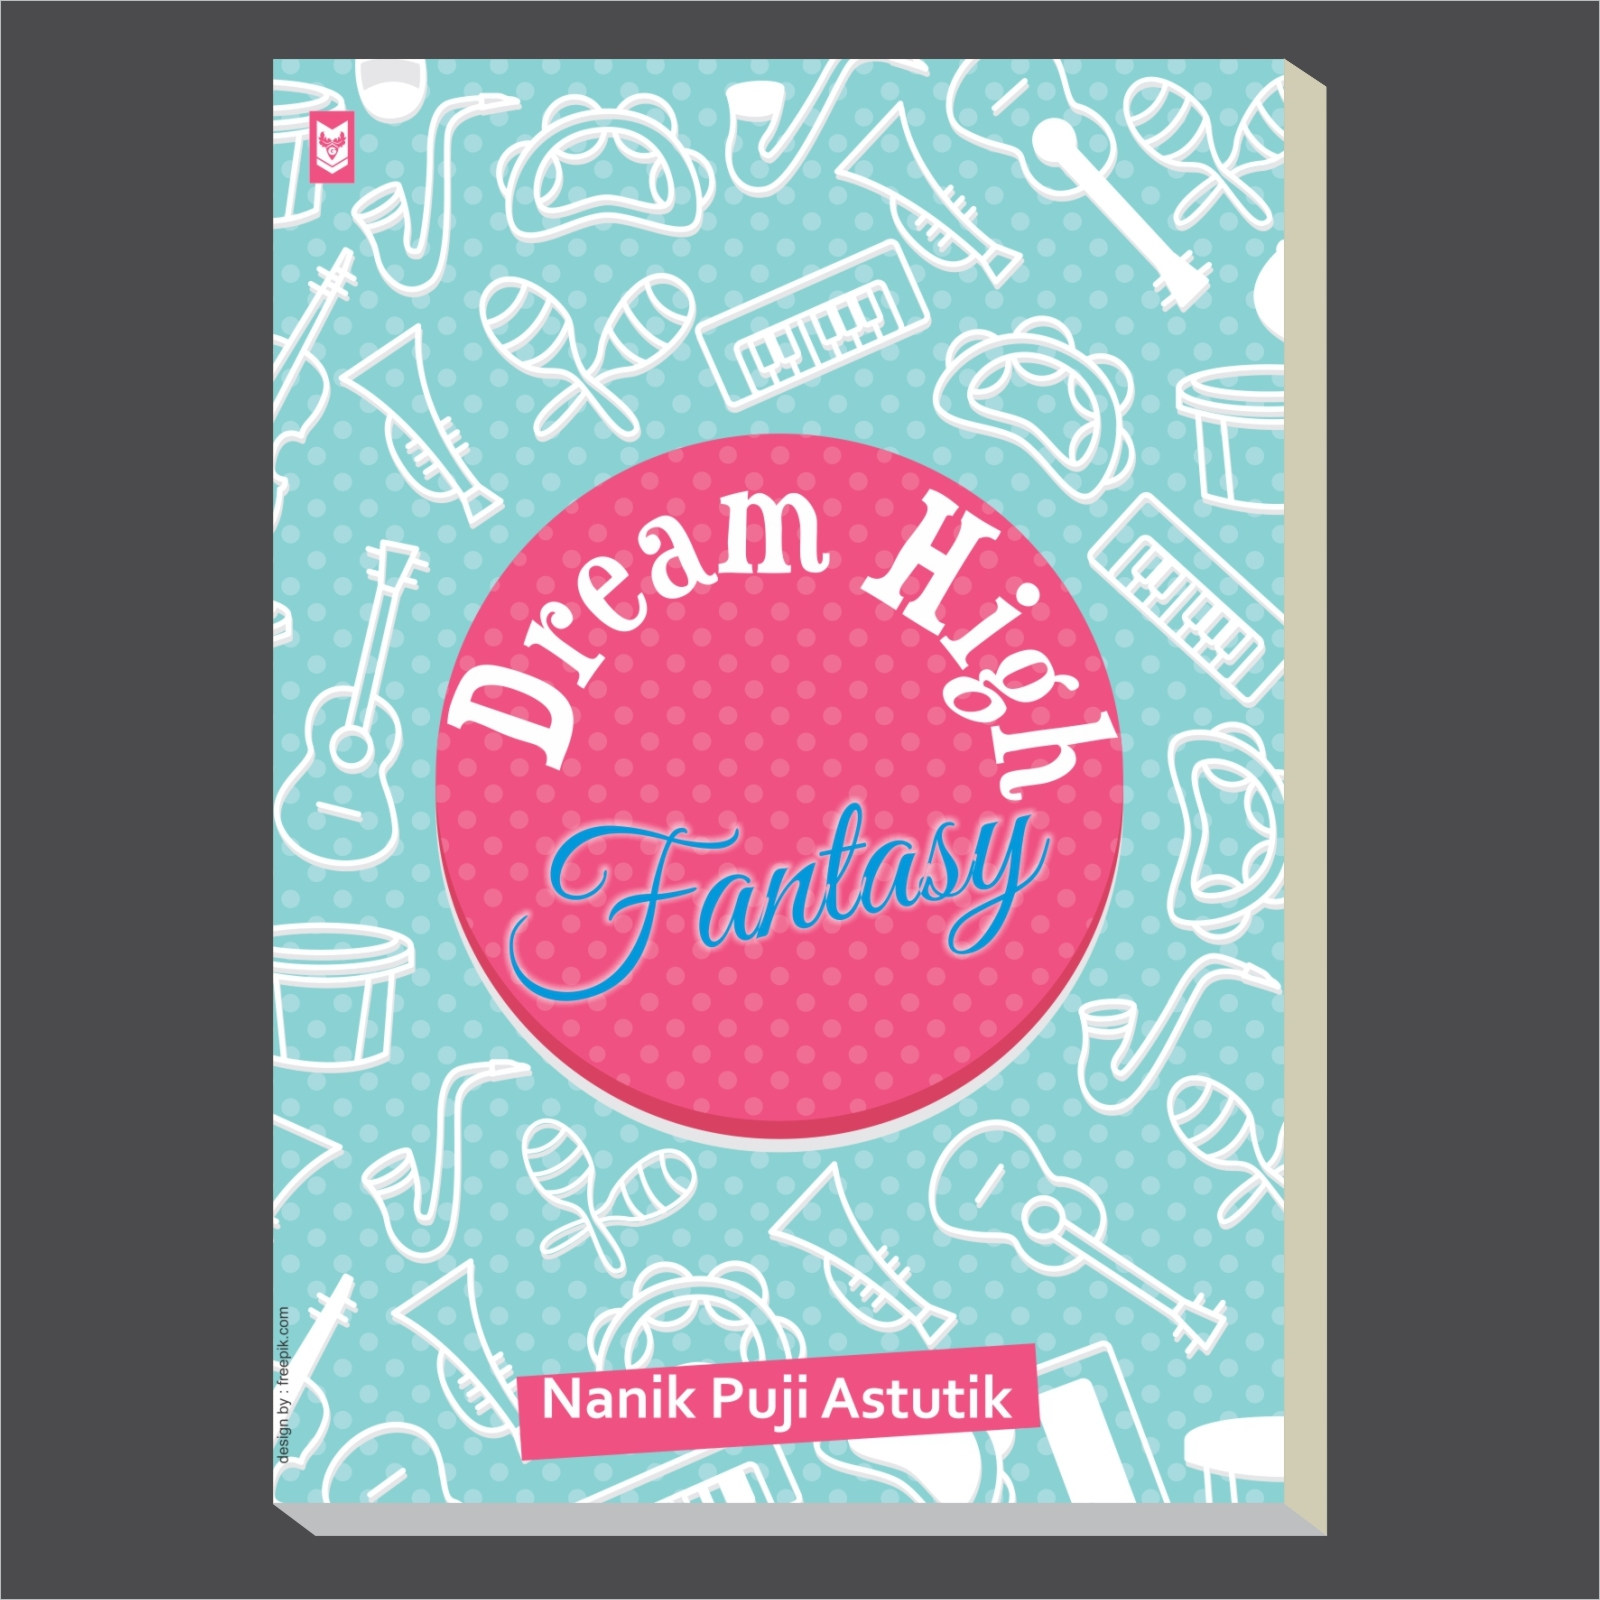 Display Dream High Fantasy.jpg